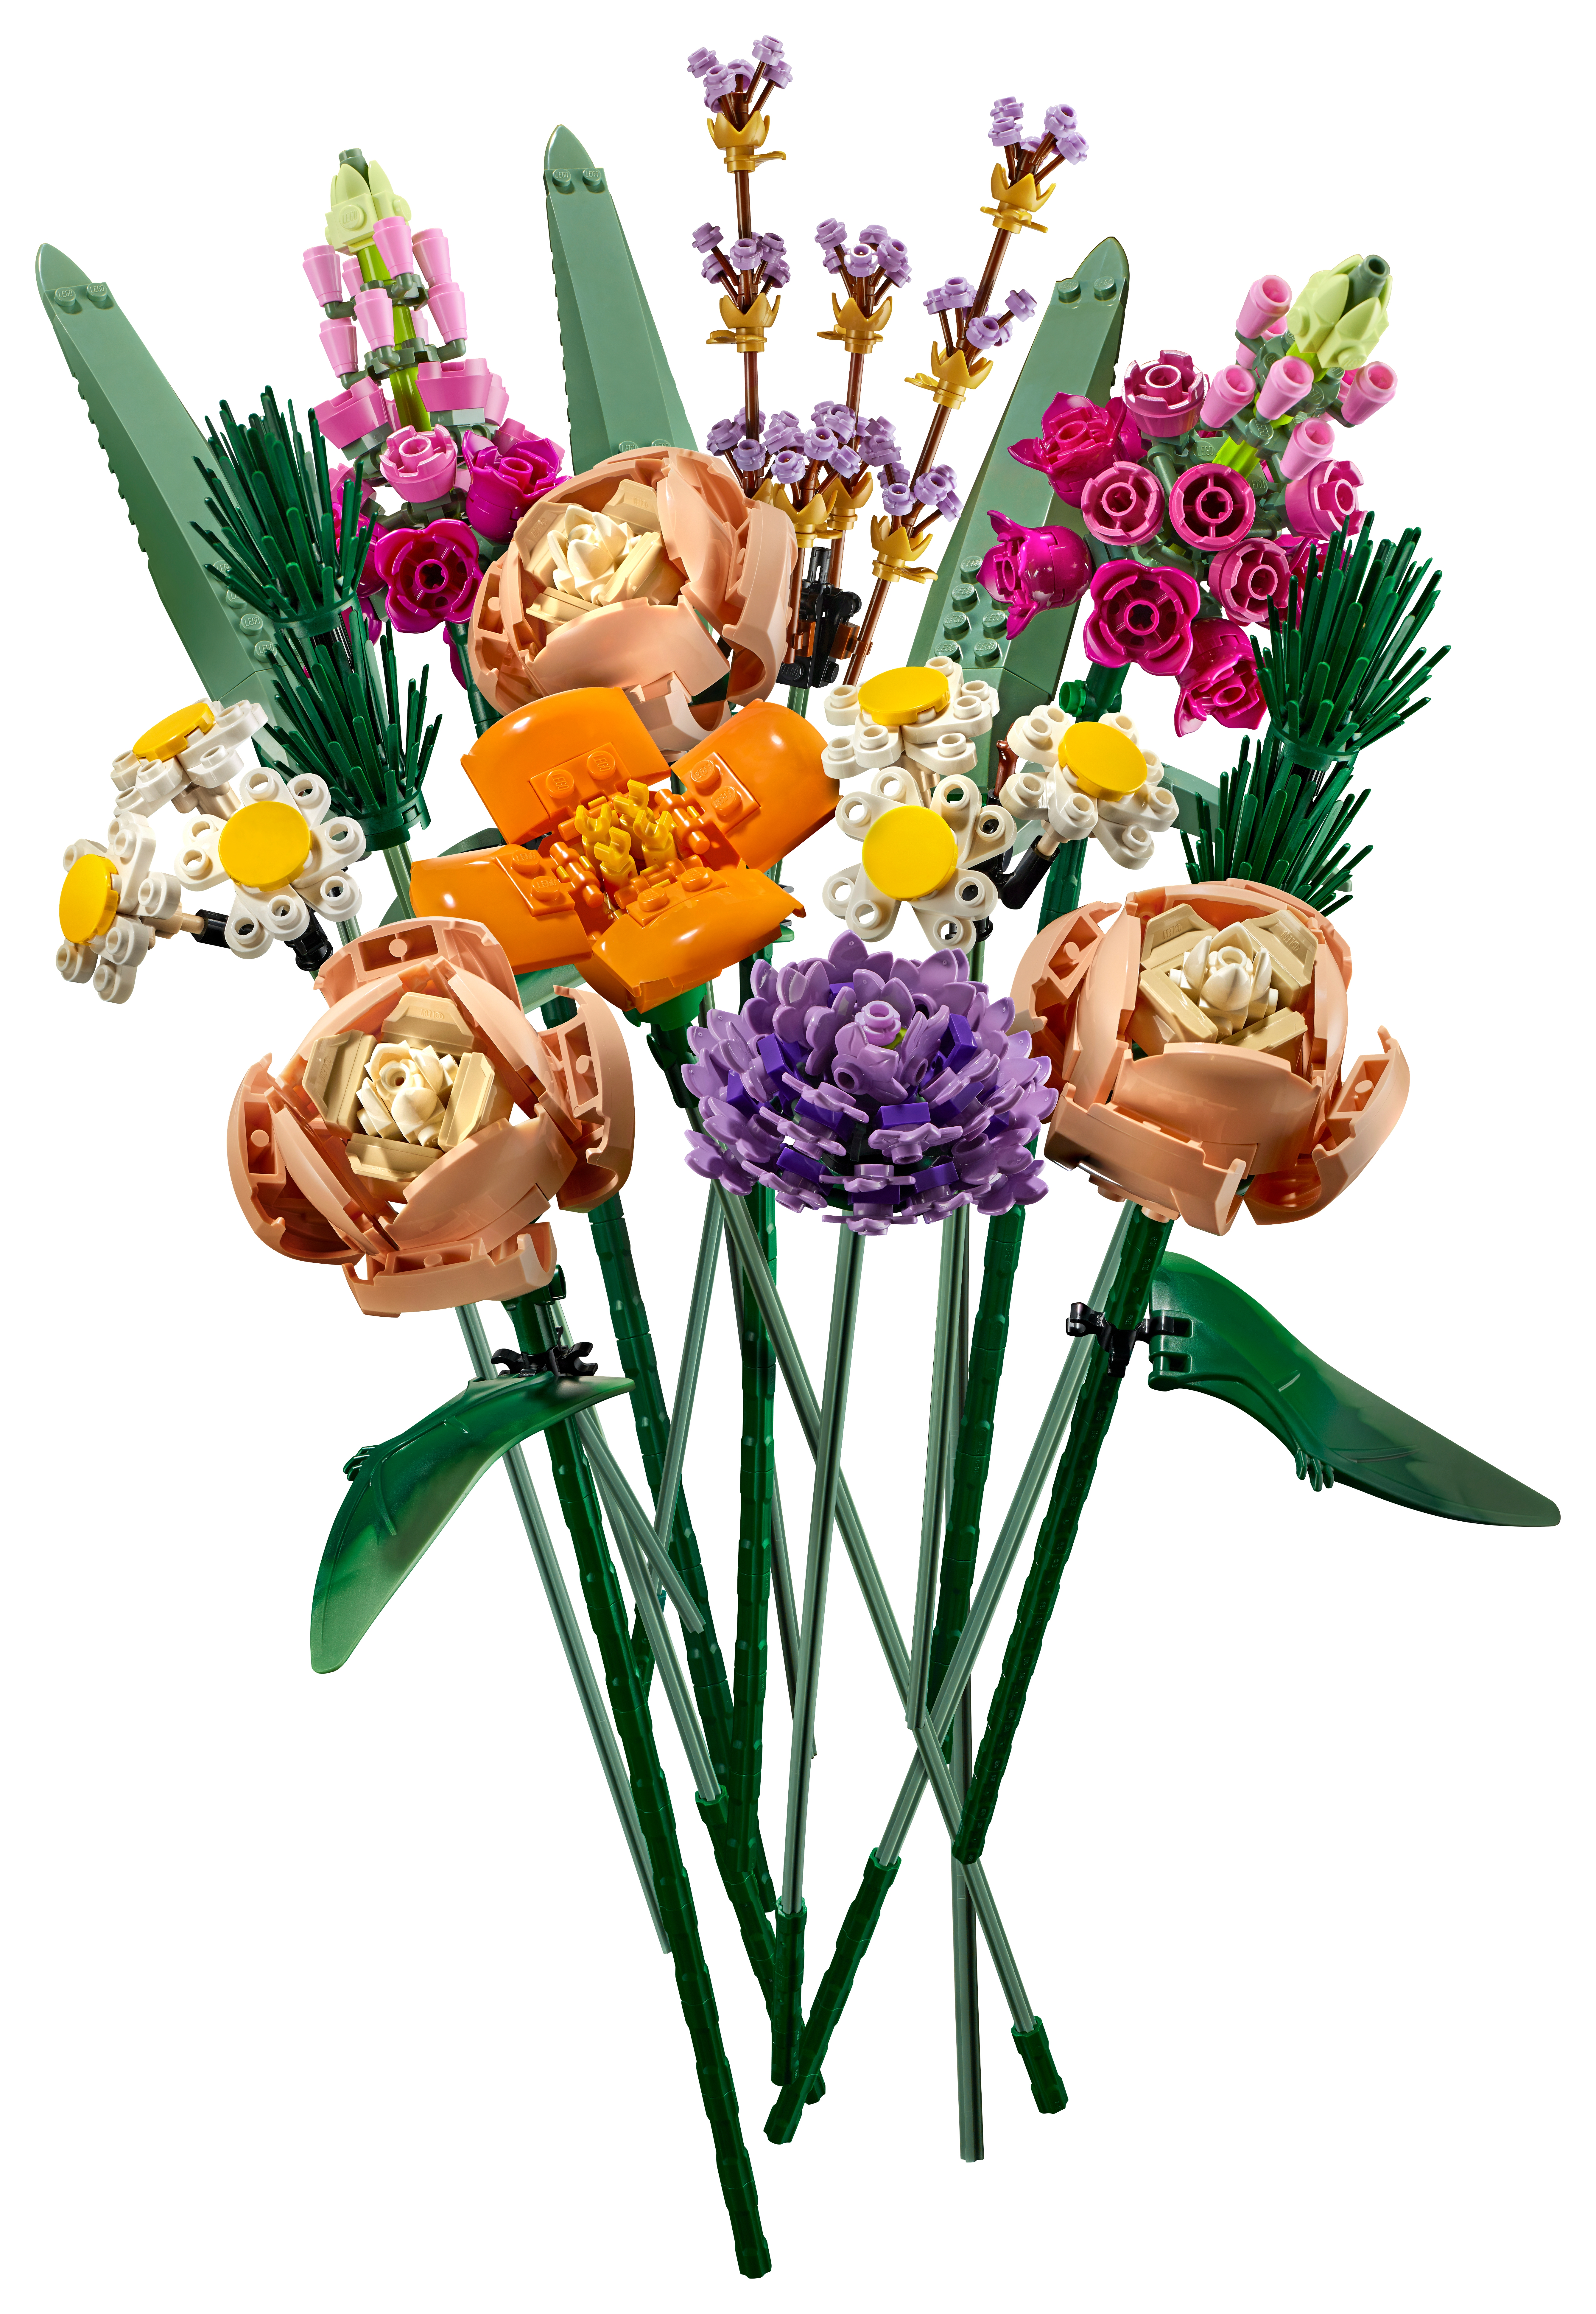 Flower Bouquet 10280 Creator Expert Buy Online At The Official Lego Shop Us